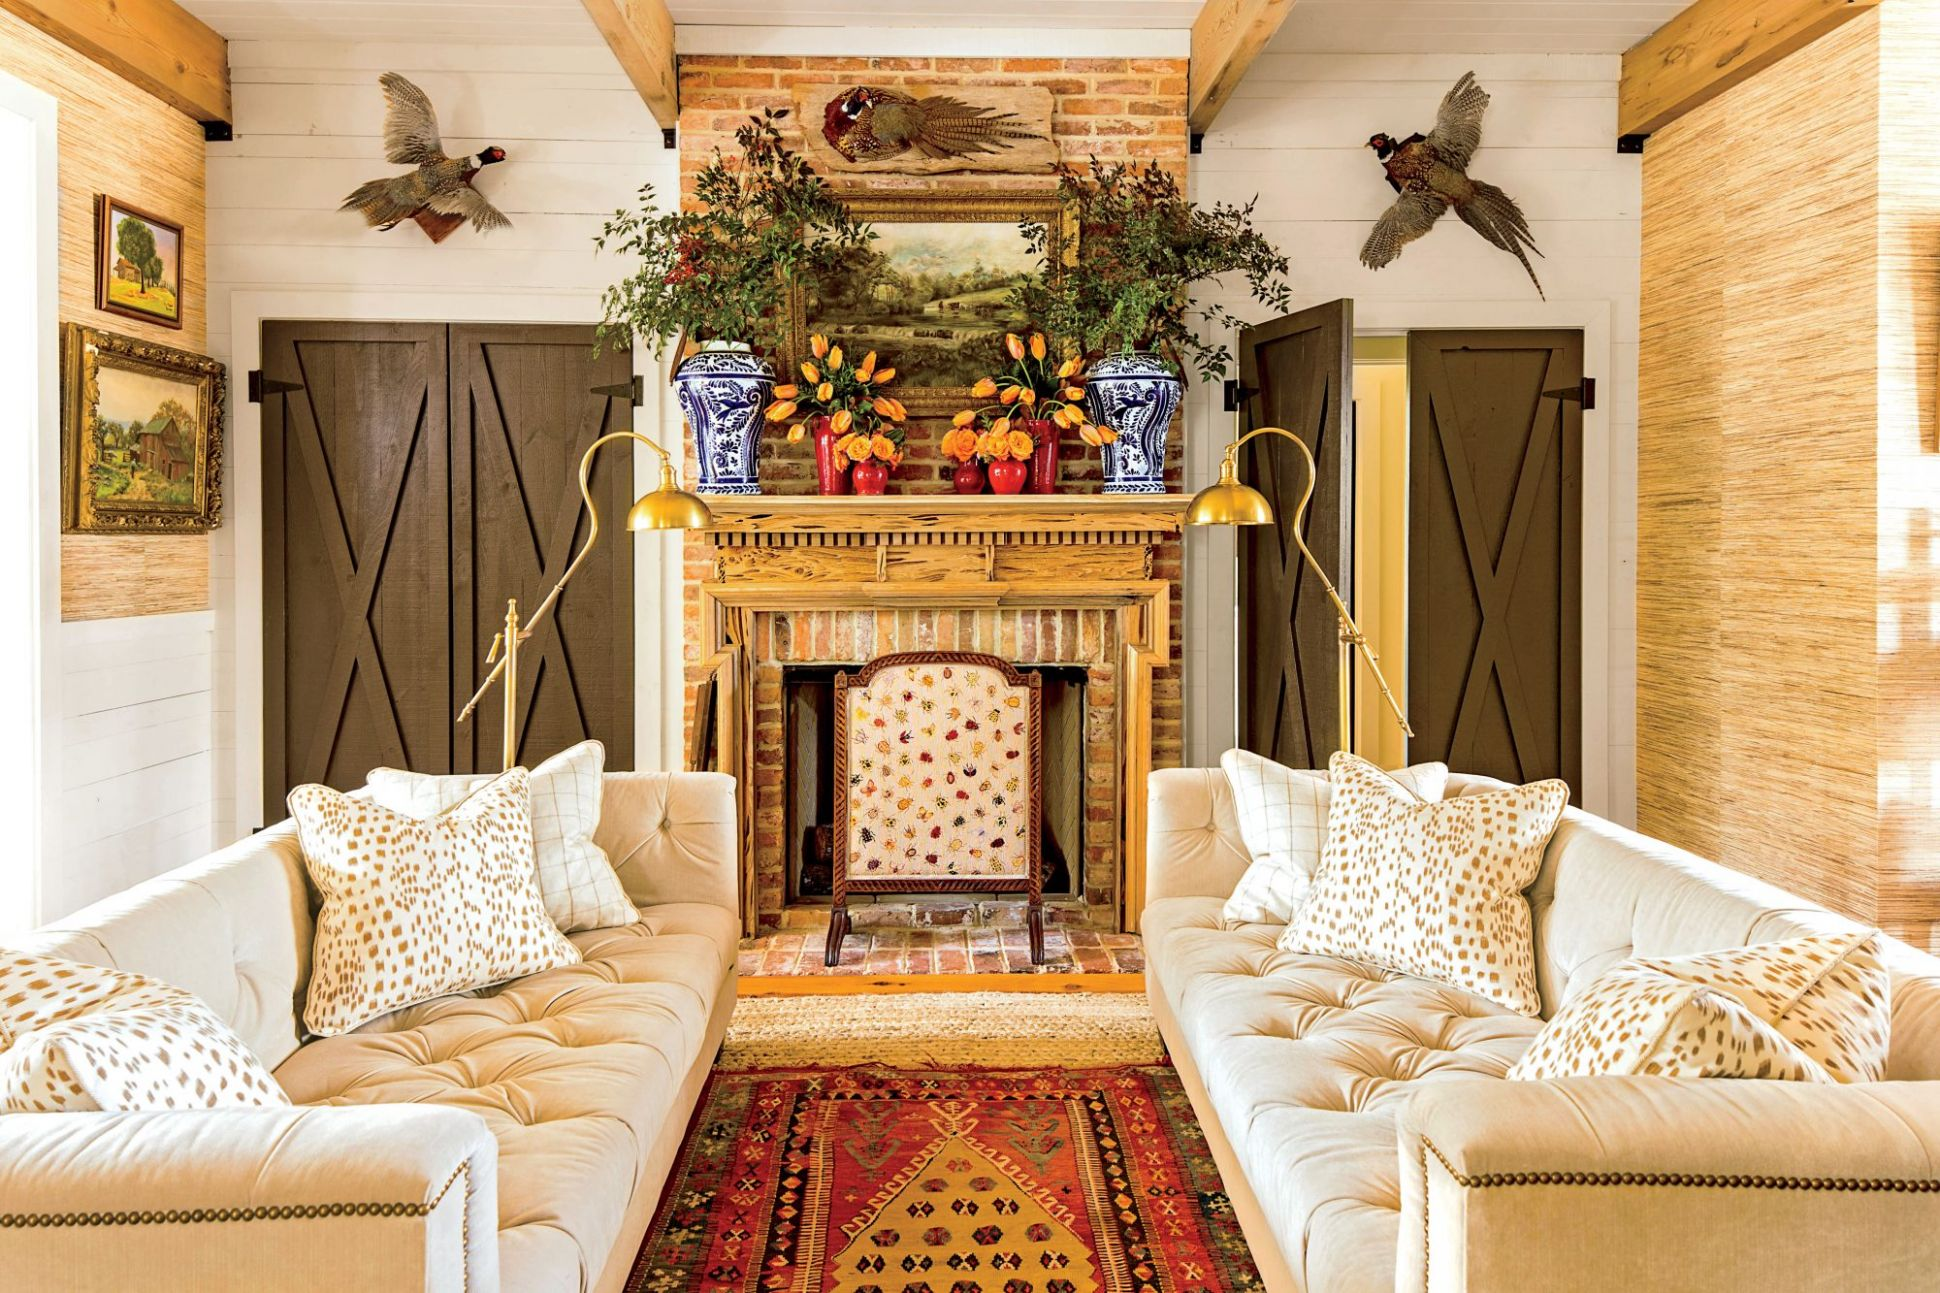 9 Farmhouse D_cor Ideas for Your Southern Home | Southern Living - front porch home decor lake country